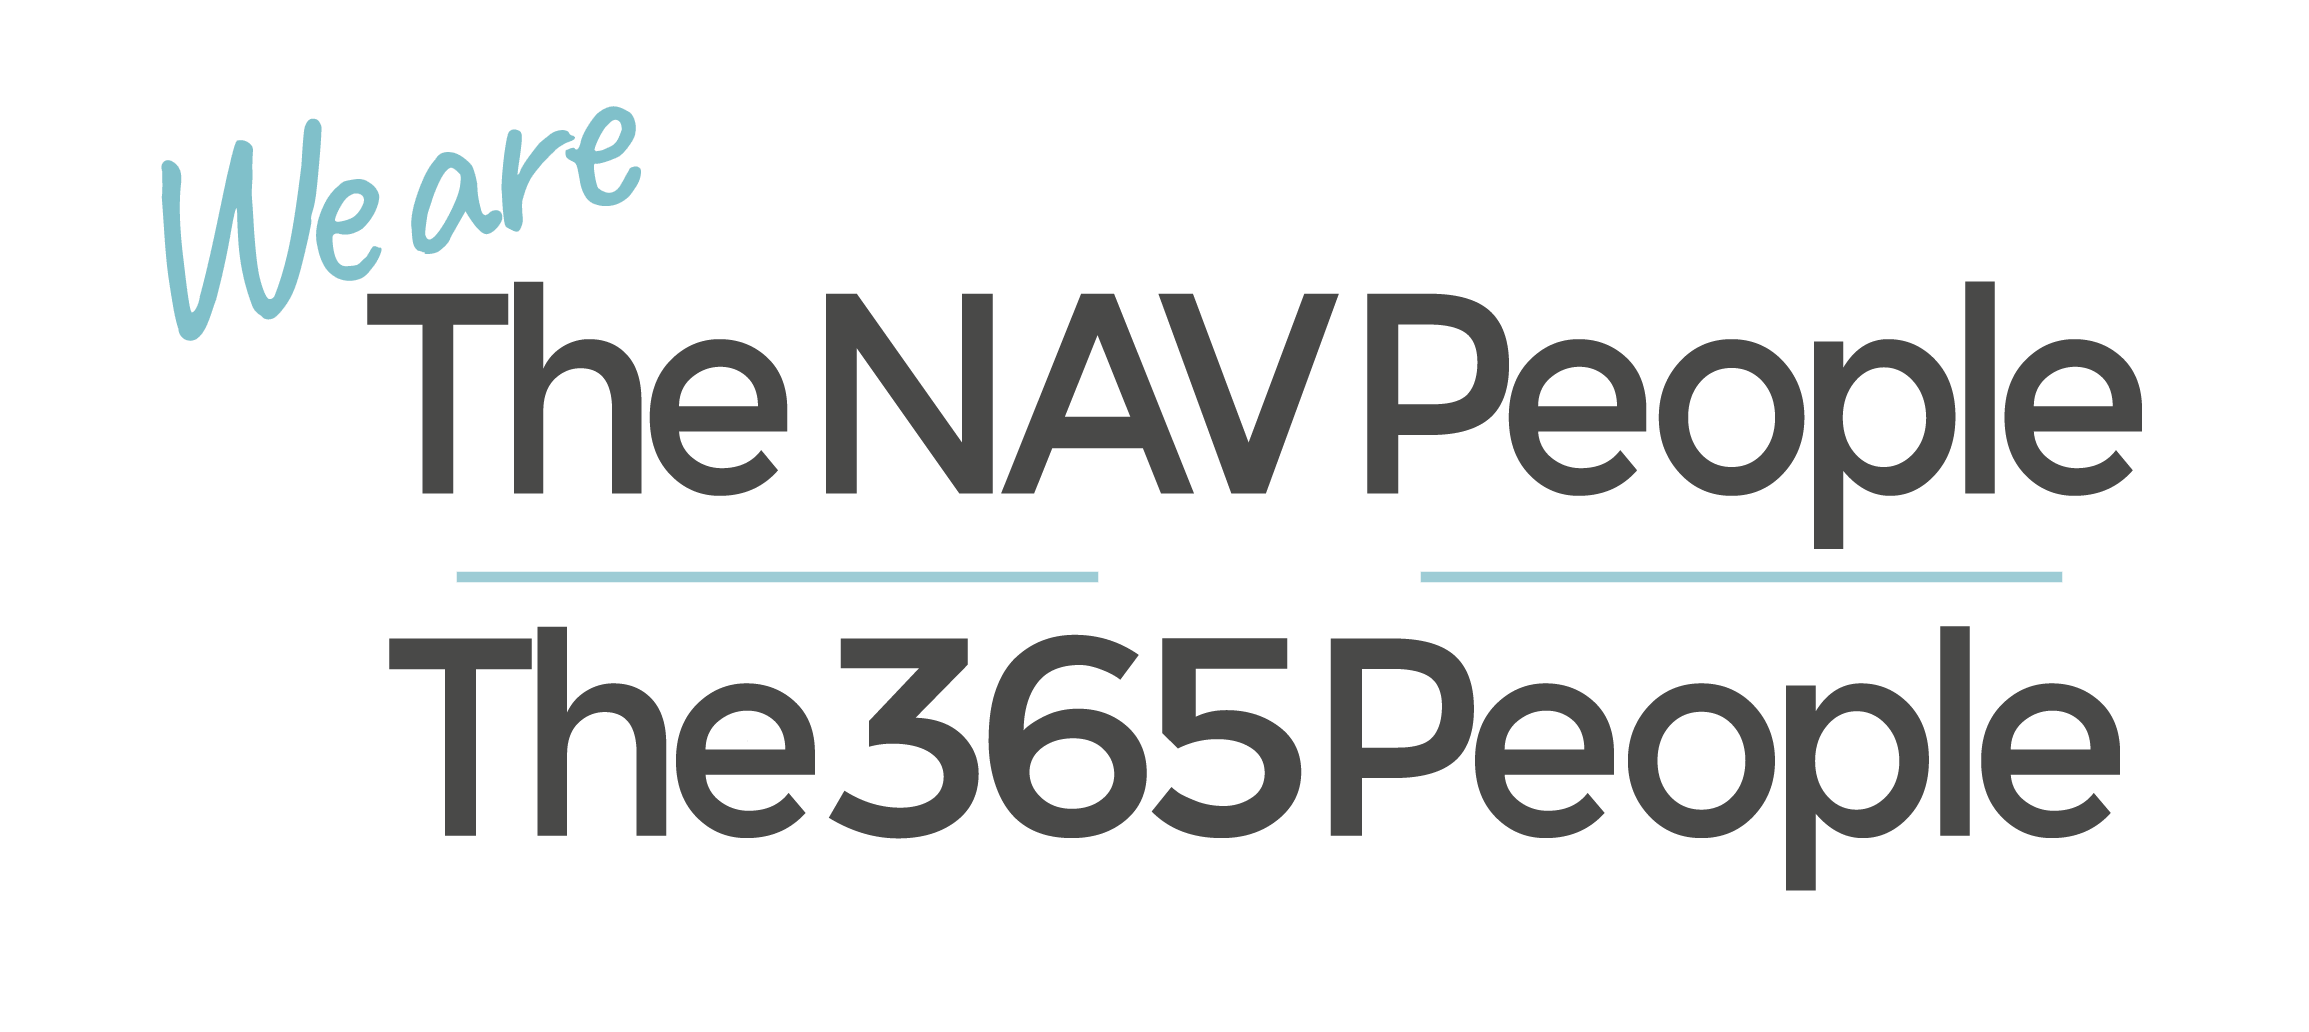 The NAV people logo